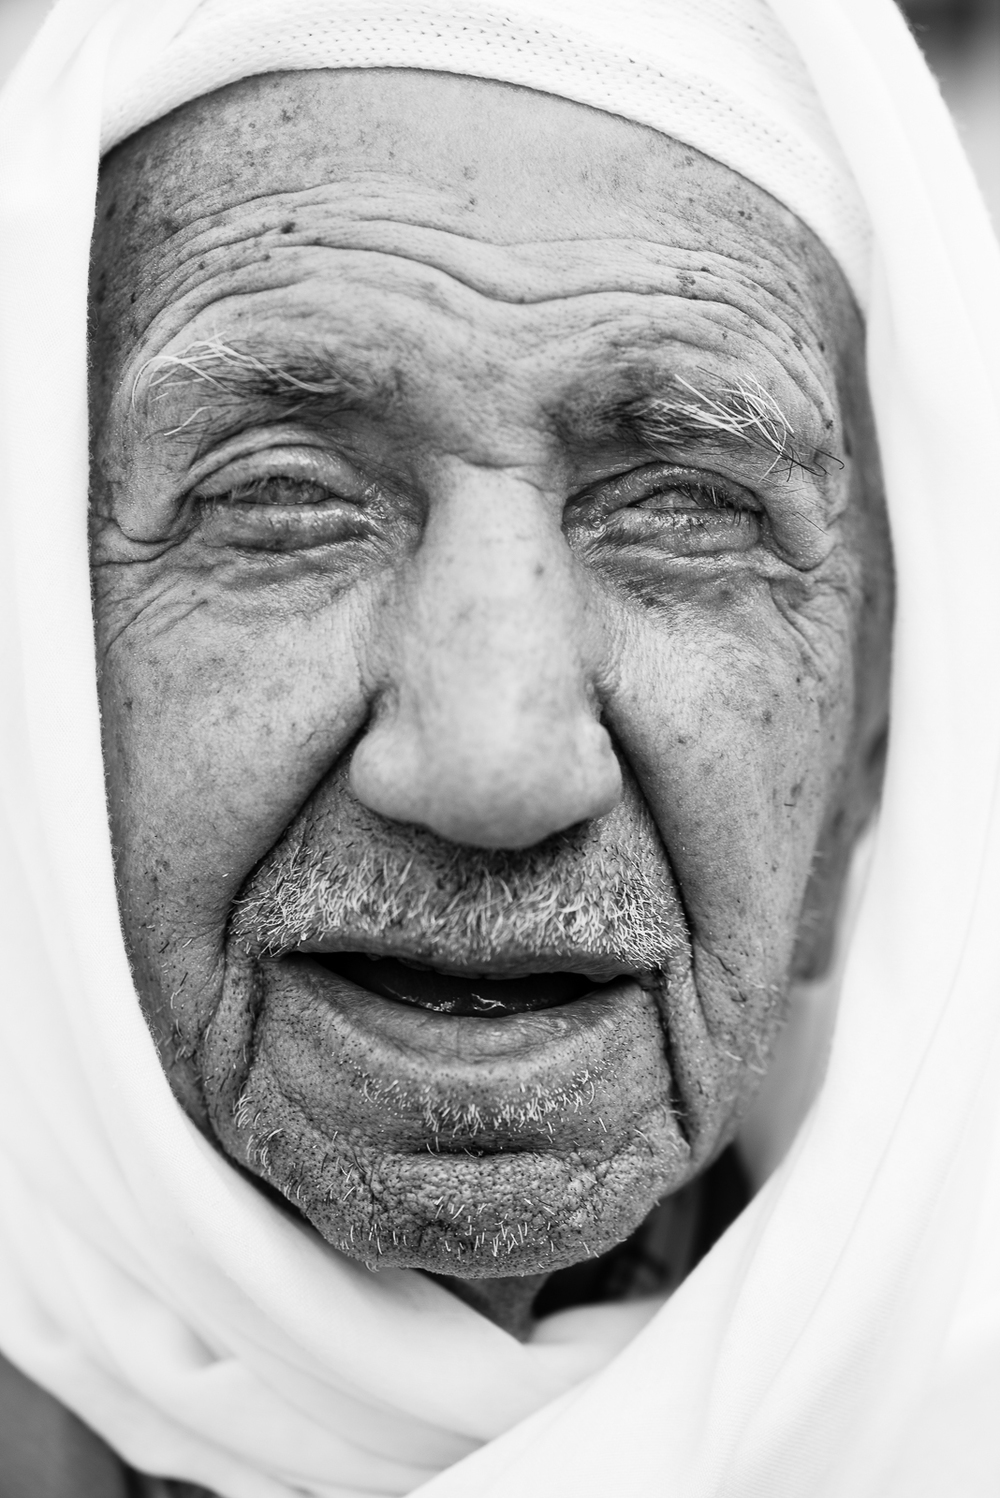 Kilis. An old man blind